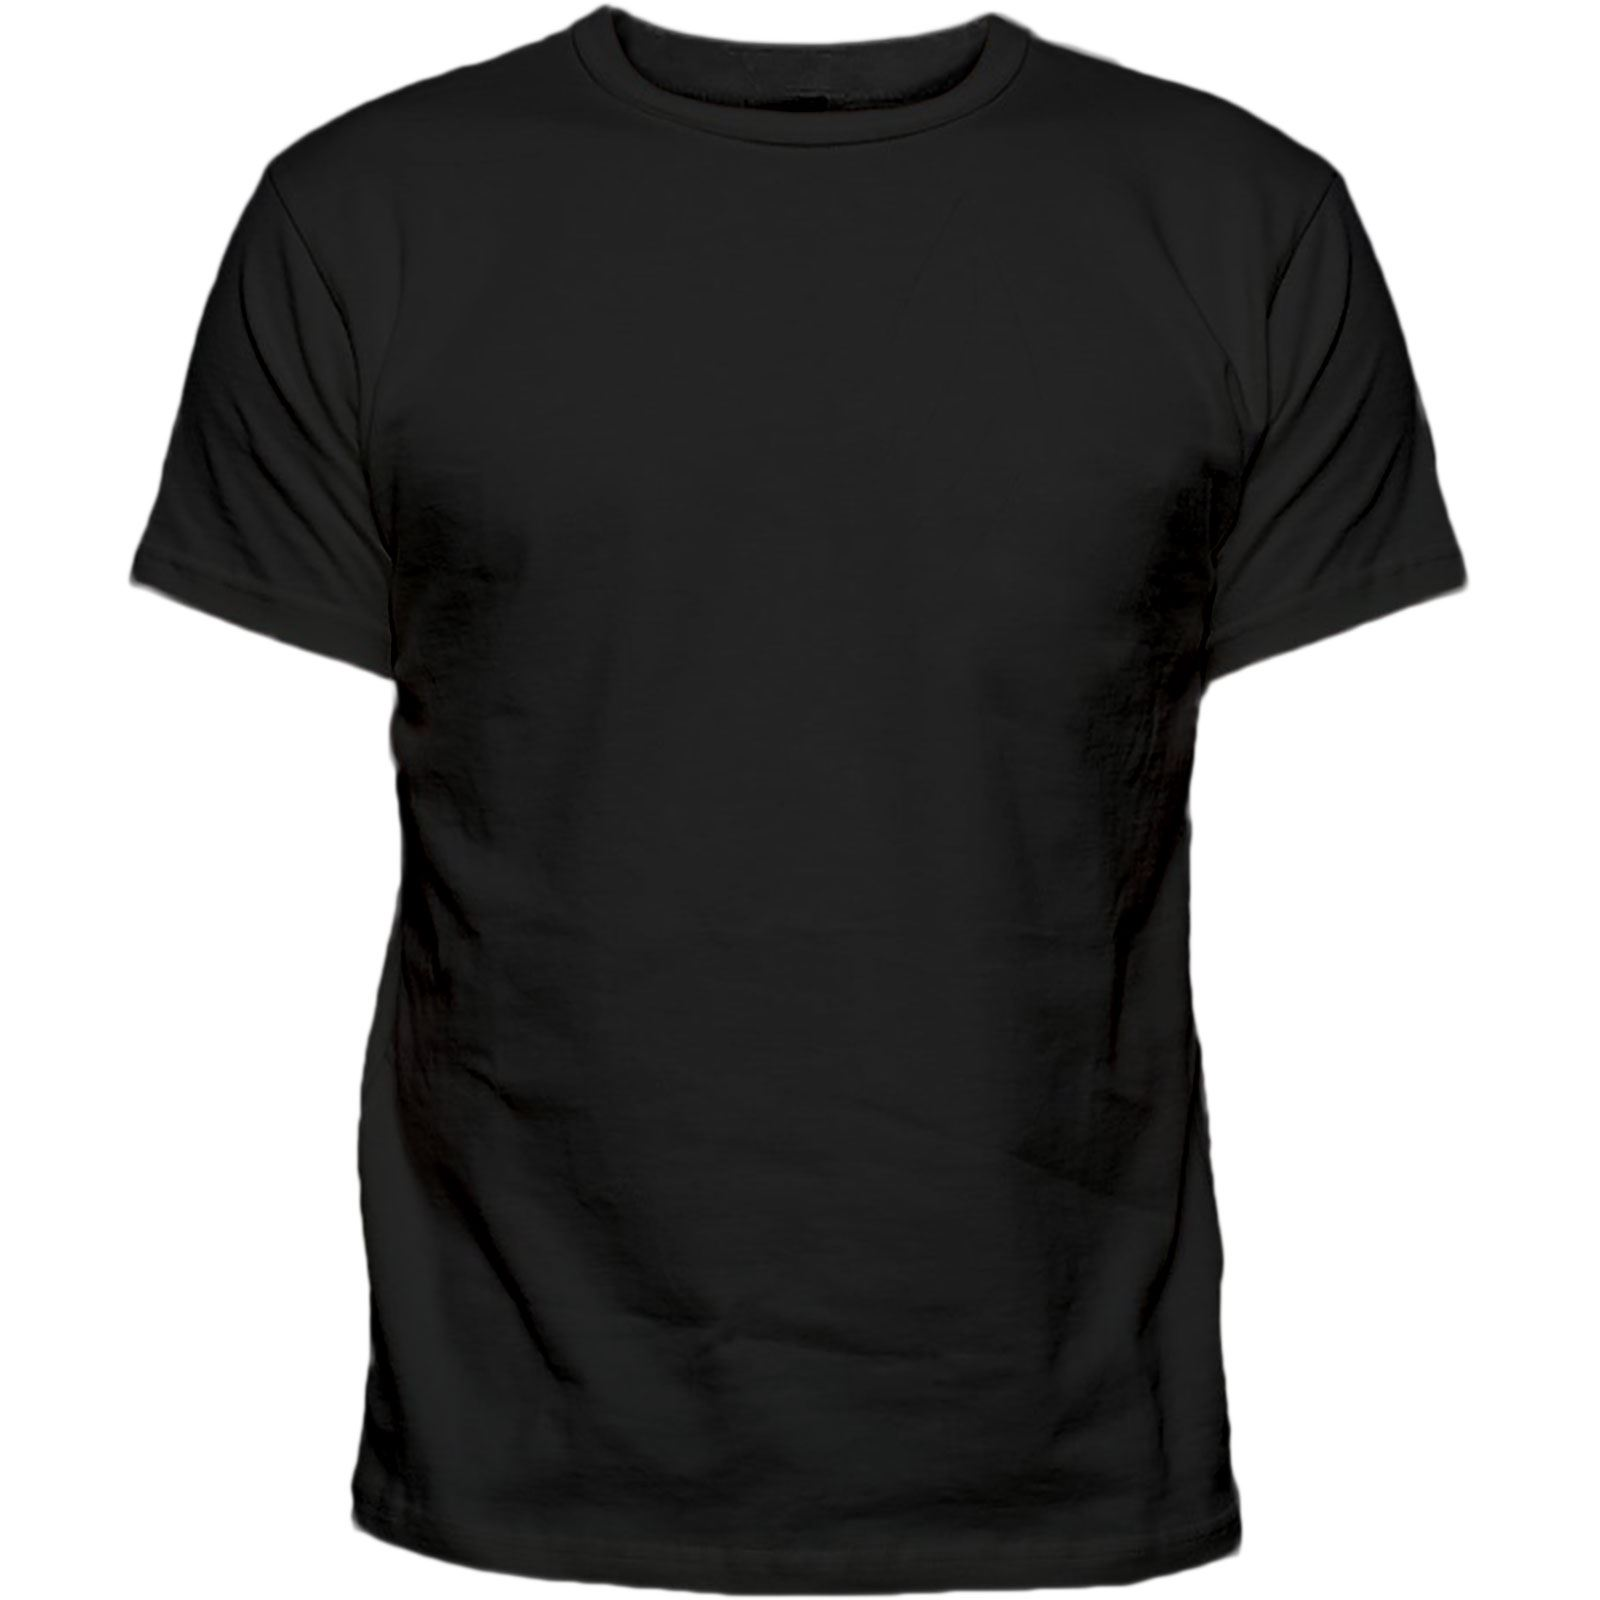 6 or 3 pack mens plain cotton blank basic t shirt casual for Blank mens t shirt